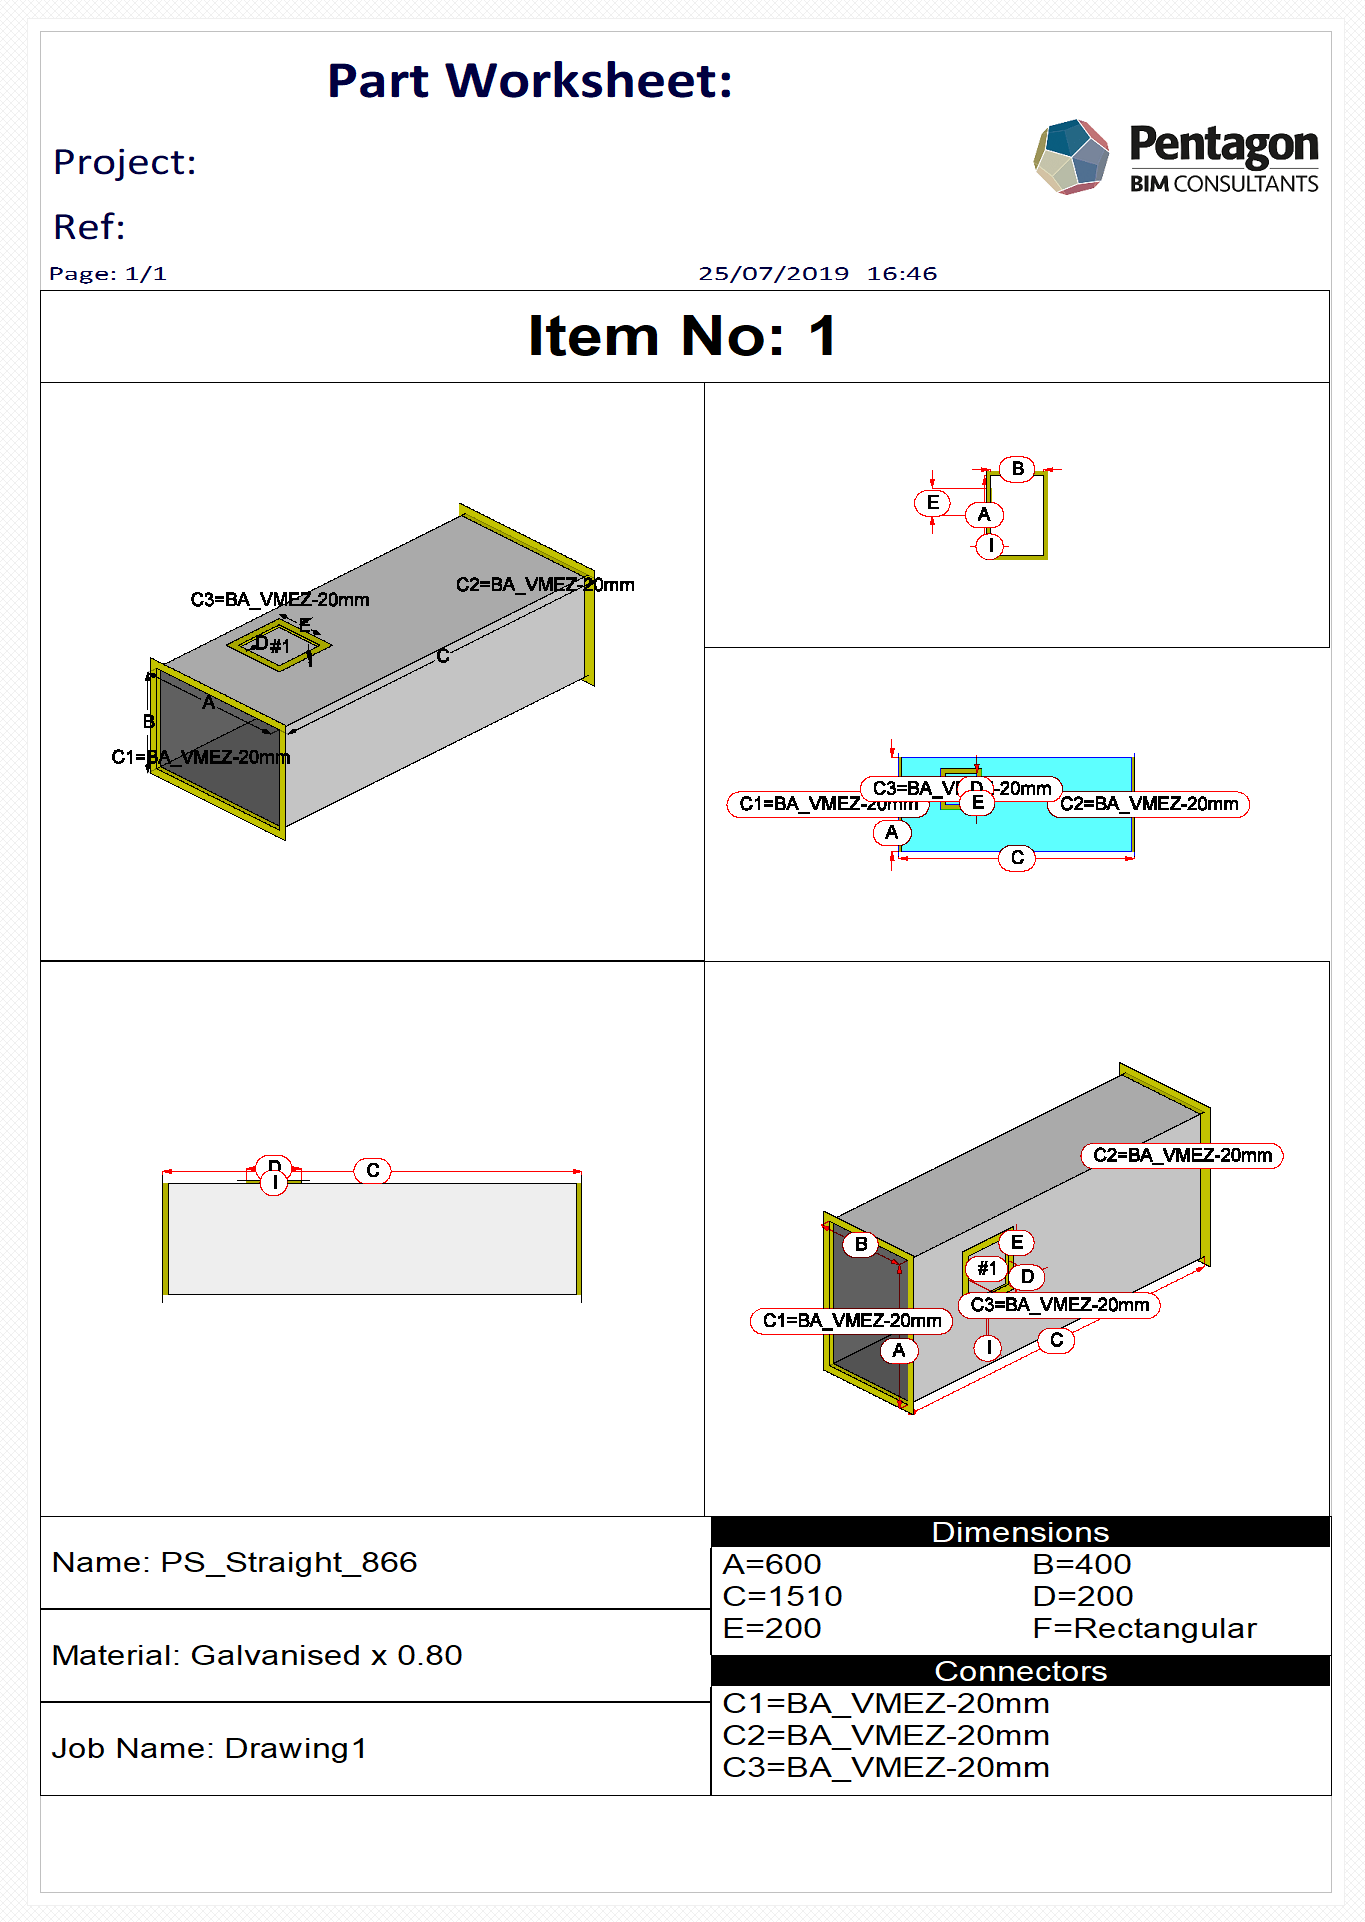 Solved Duct Opening Hole Dimensions To Show In Worksheets